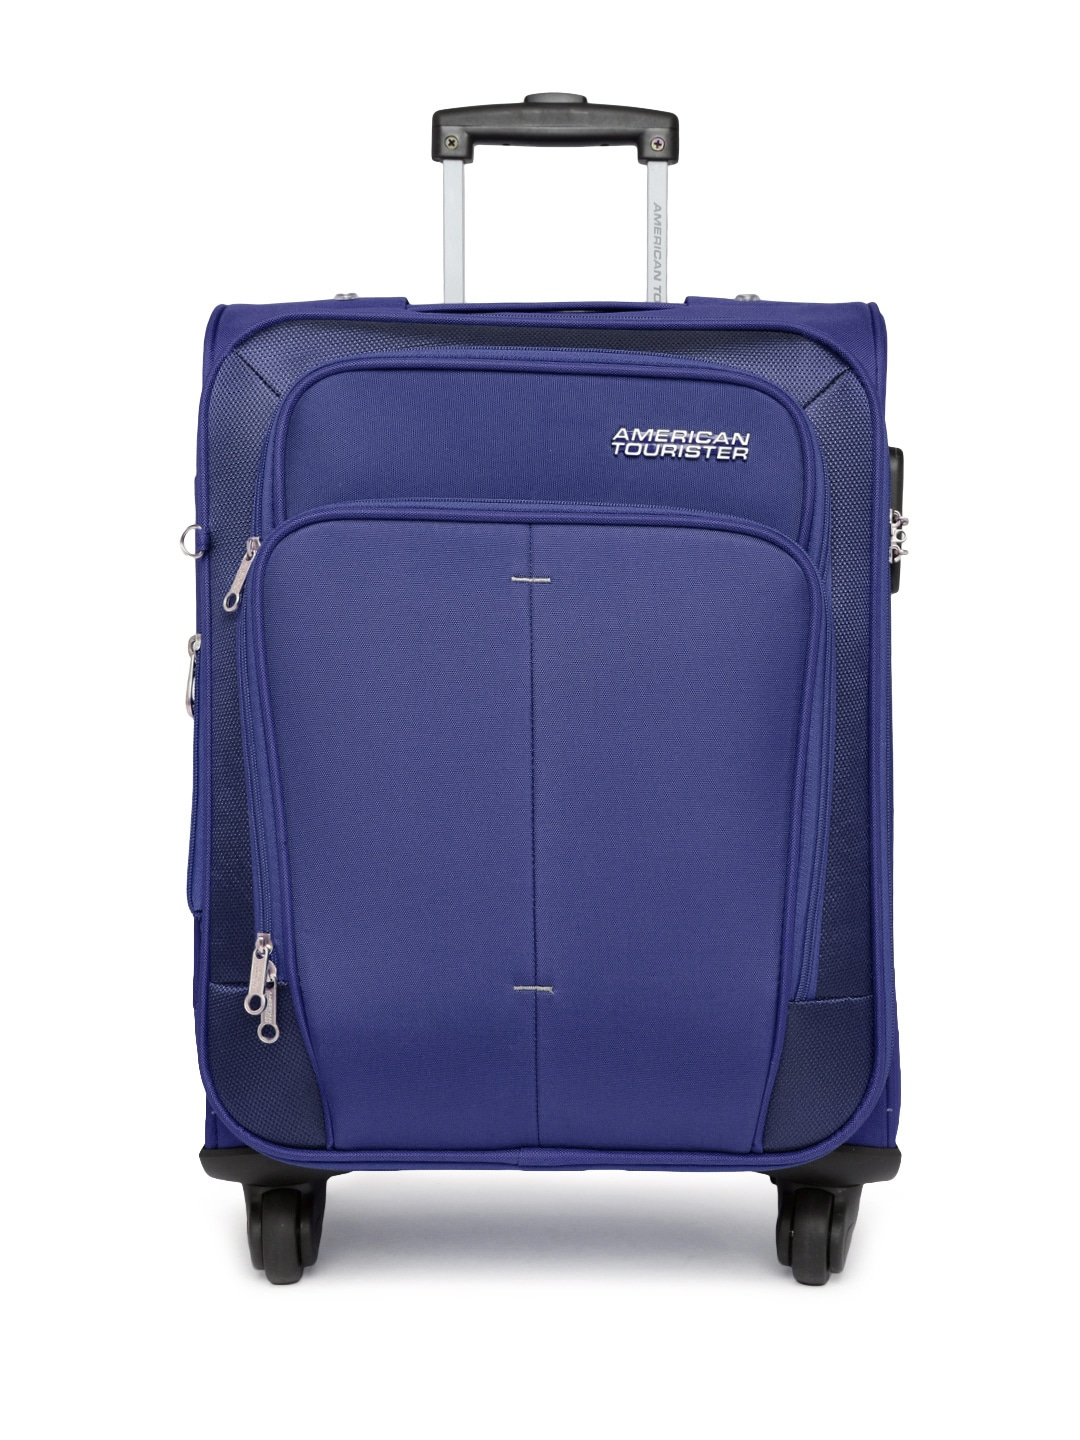 bb9ed519bd57 American Tourister - Buy American Tourister Products Online